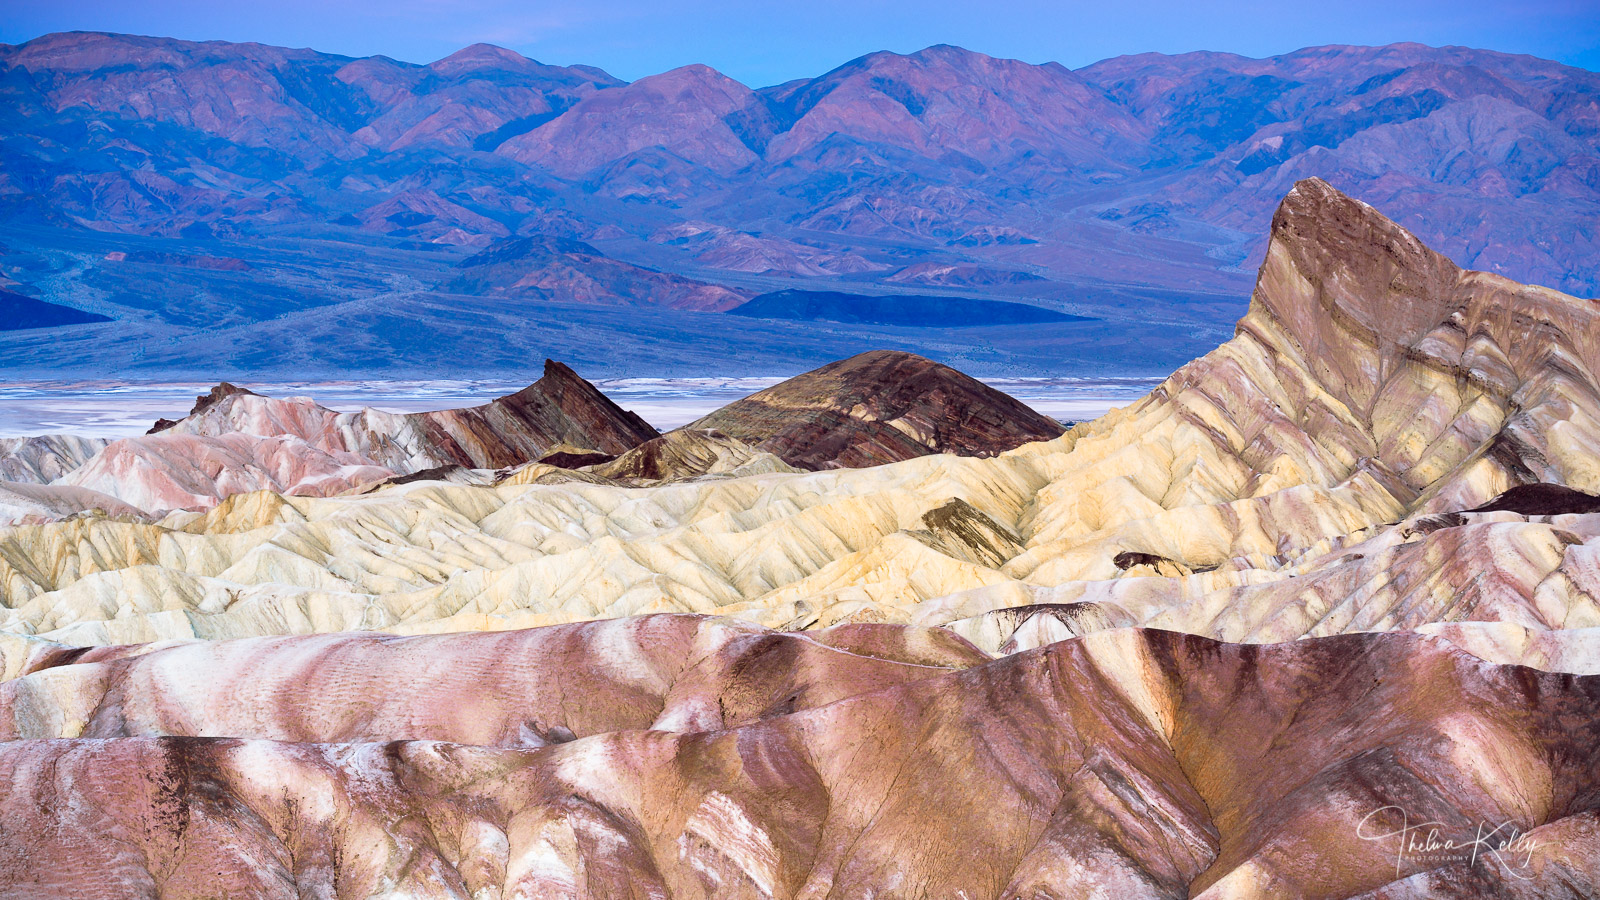 Zabriskie Point in Death Valley National Park is the perfect place to await the sunrise